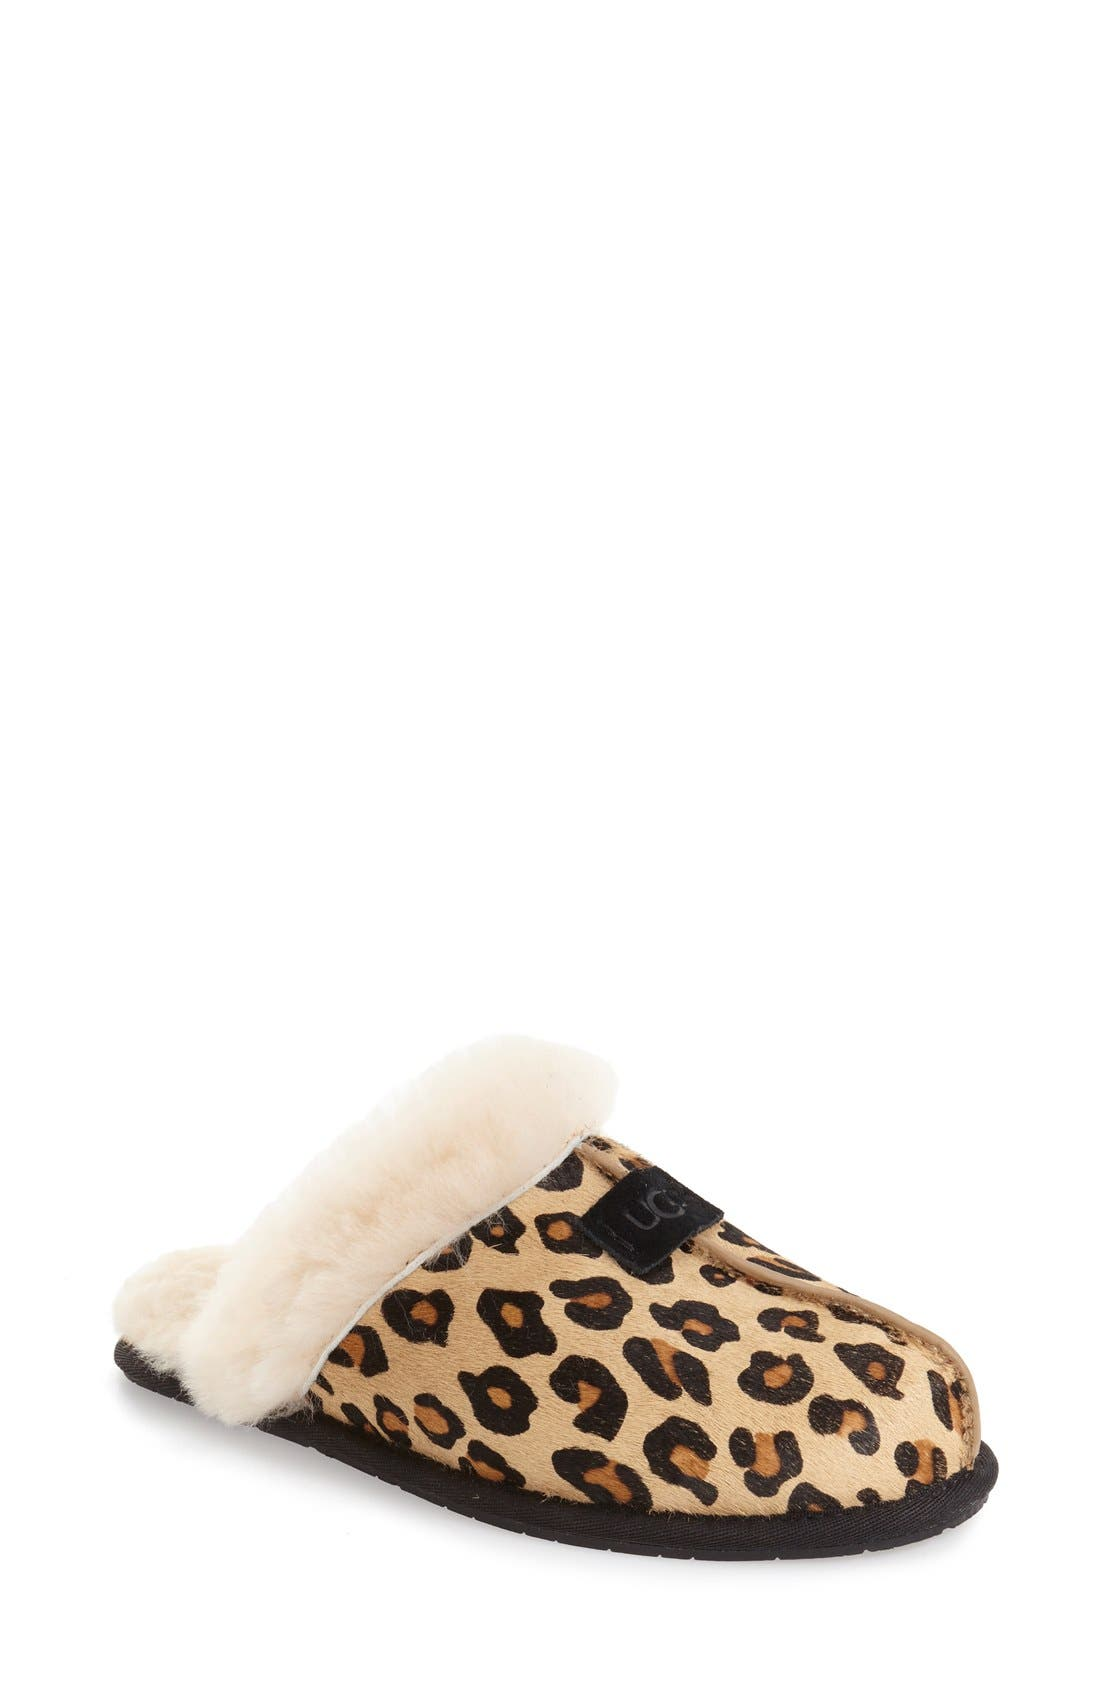 UGG<SUP>®</SUP> Scuffette II Leopard Spot Calf Hair Genuine Shearling Cuff Slipper